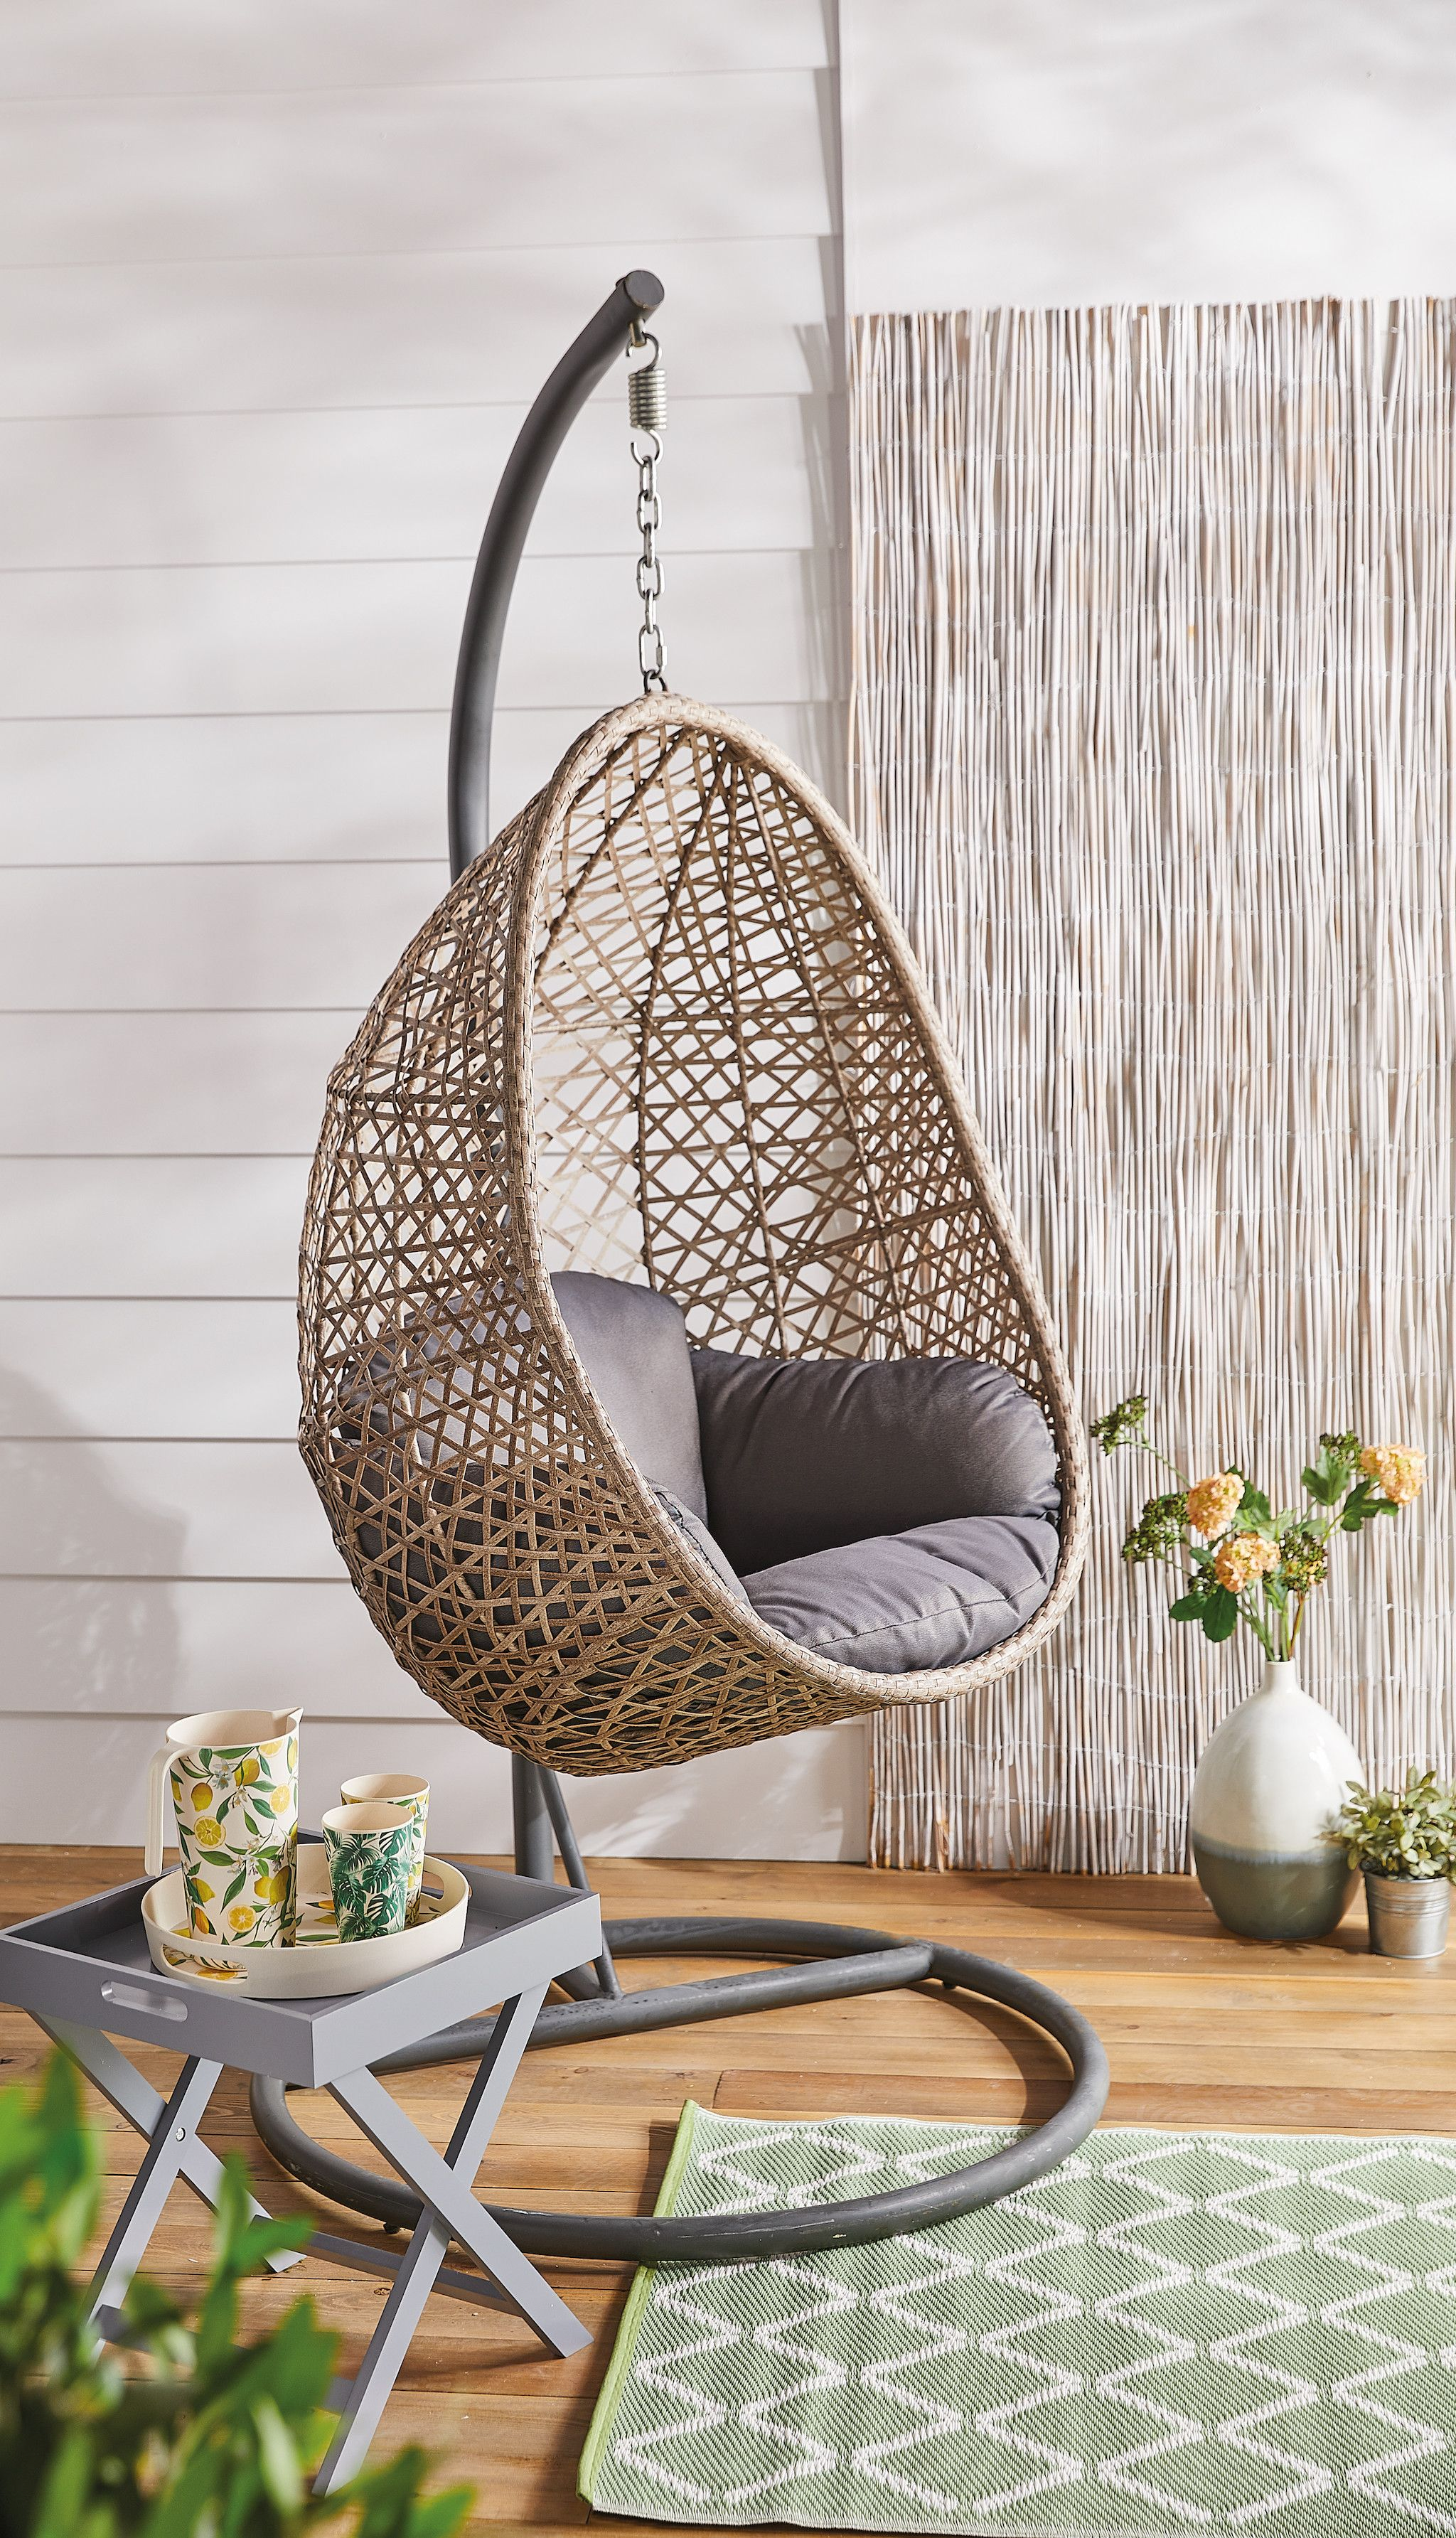 Egg Wicker Chair New Aldi Garden Furniture Is Largest Ever Outdoor Range Aldi